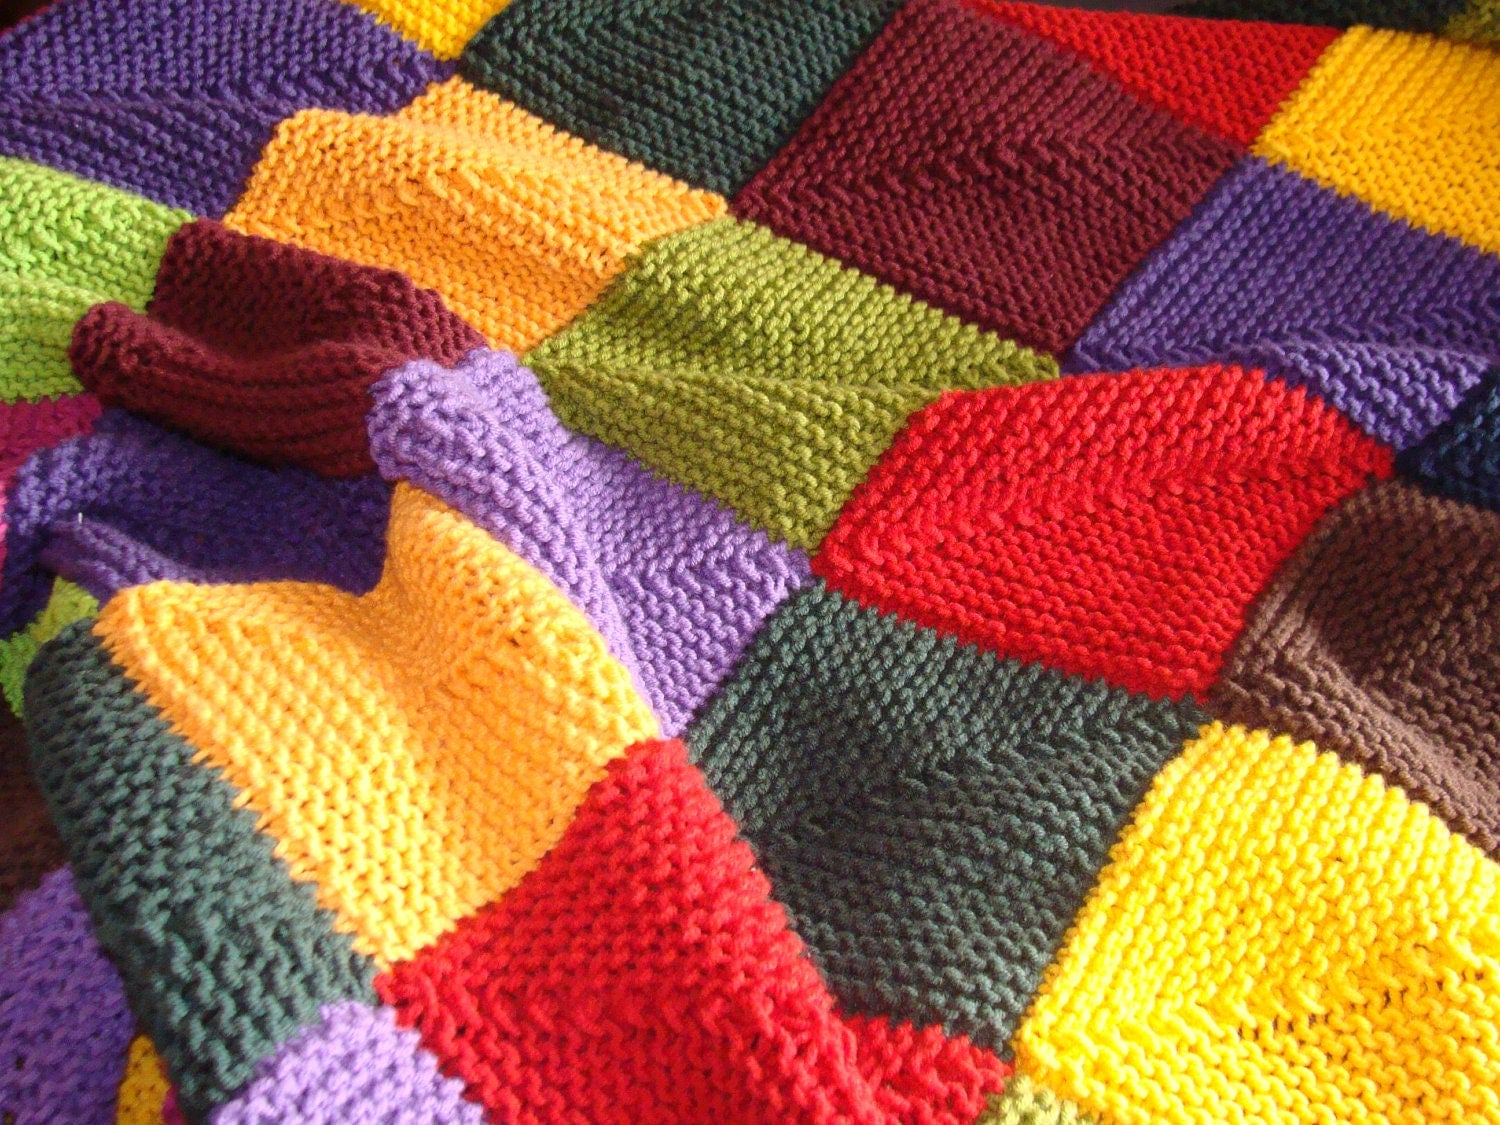 Knitting Blankets : Hand knitted blanket multicolor baby children designed by